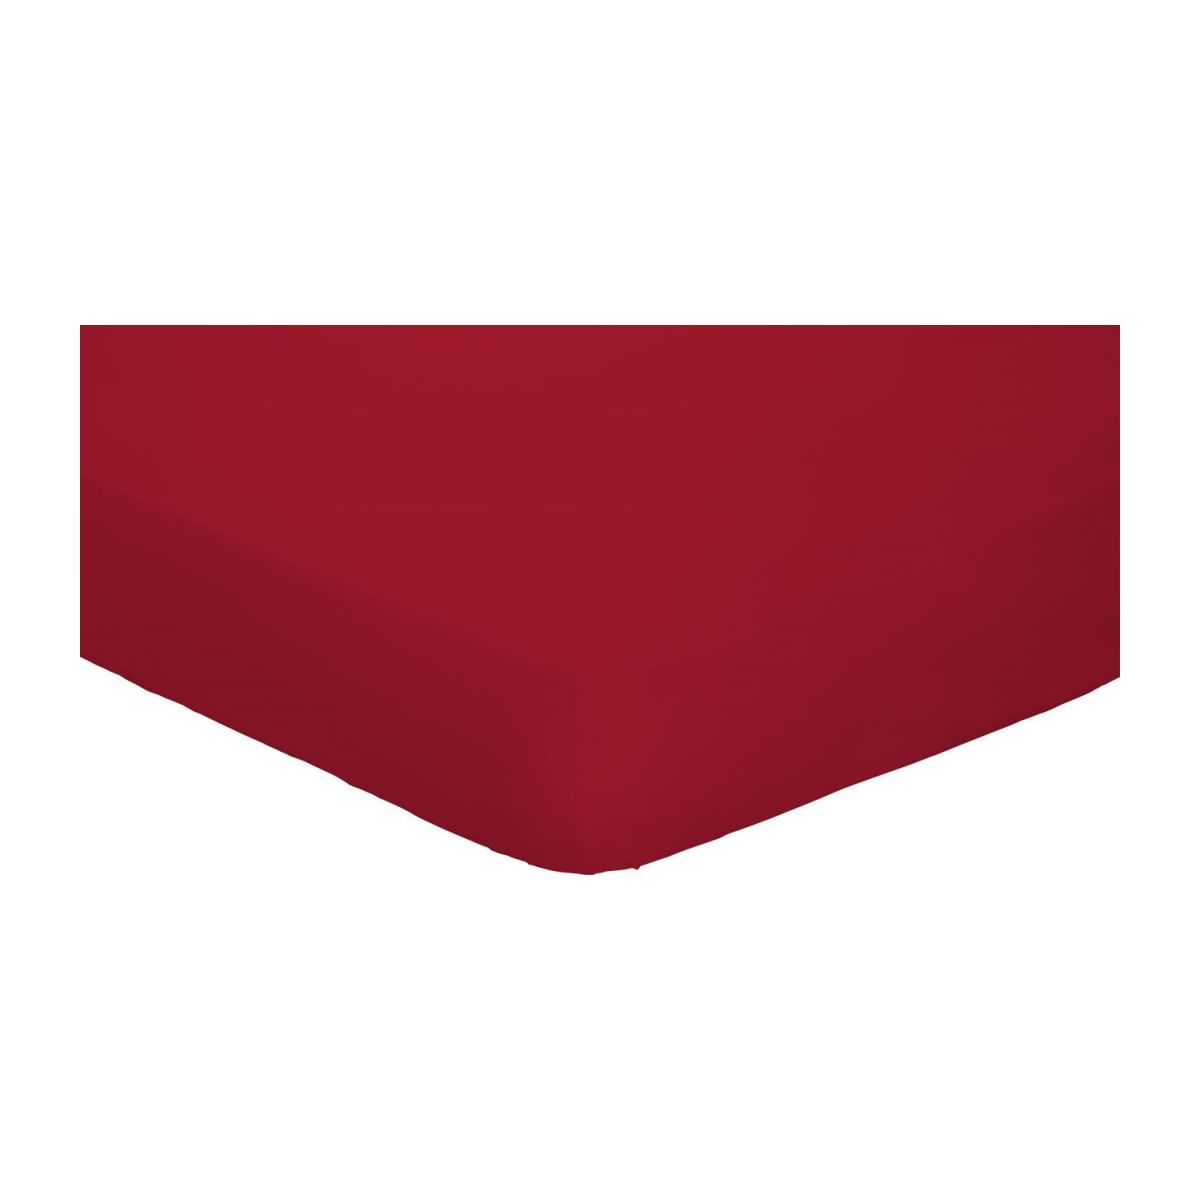 Couette 90x200 Percale Ii Drap Housse 90x200 Rouge